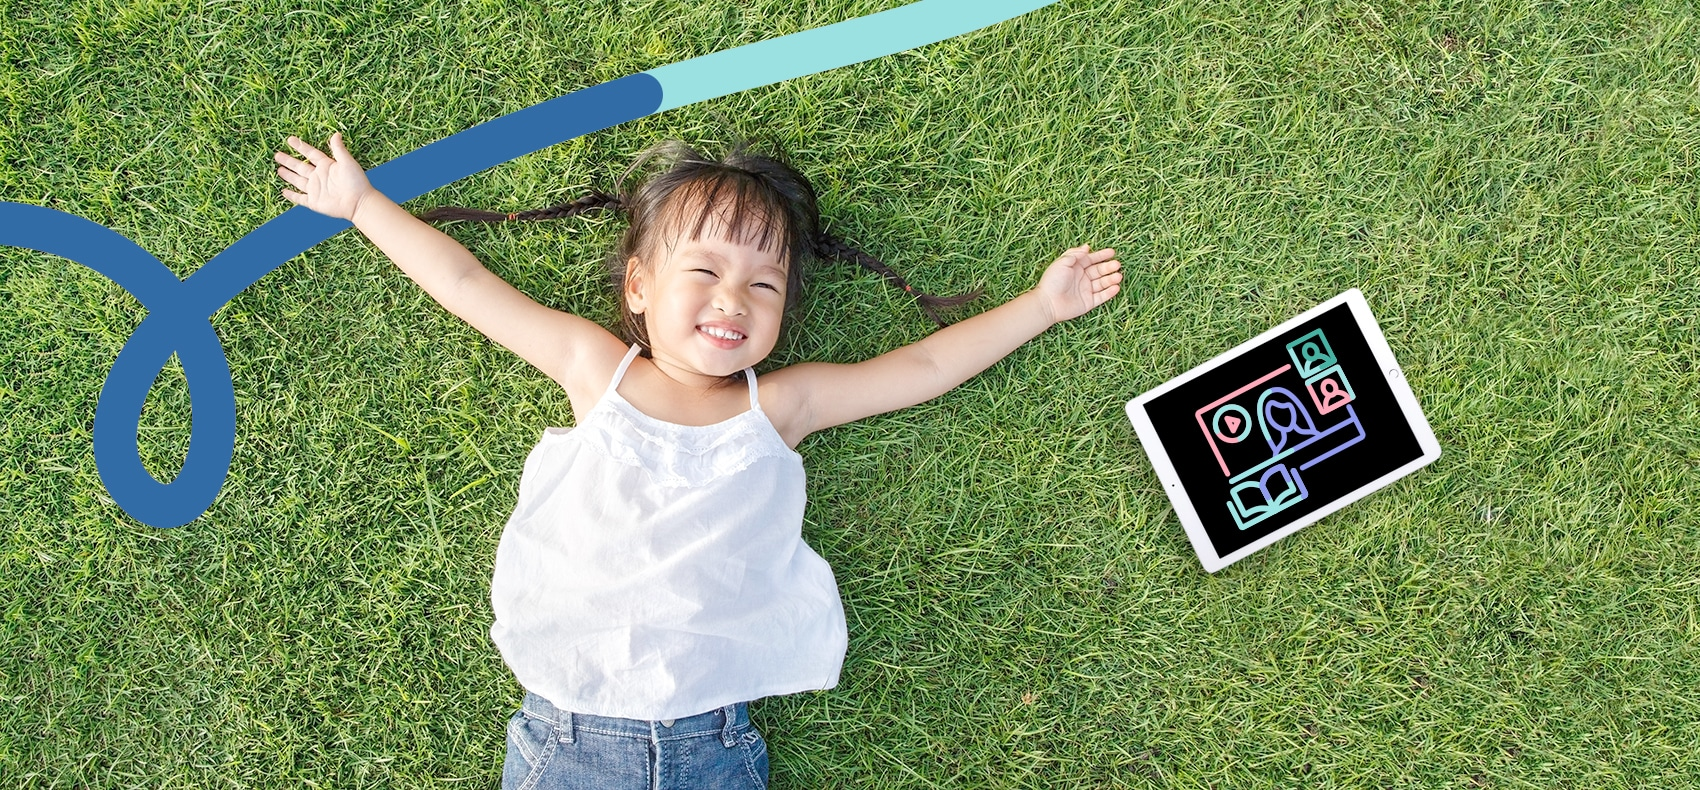 Apart from the screen time from learning, children should have more time to relax and go outdoors